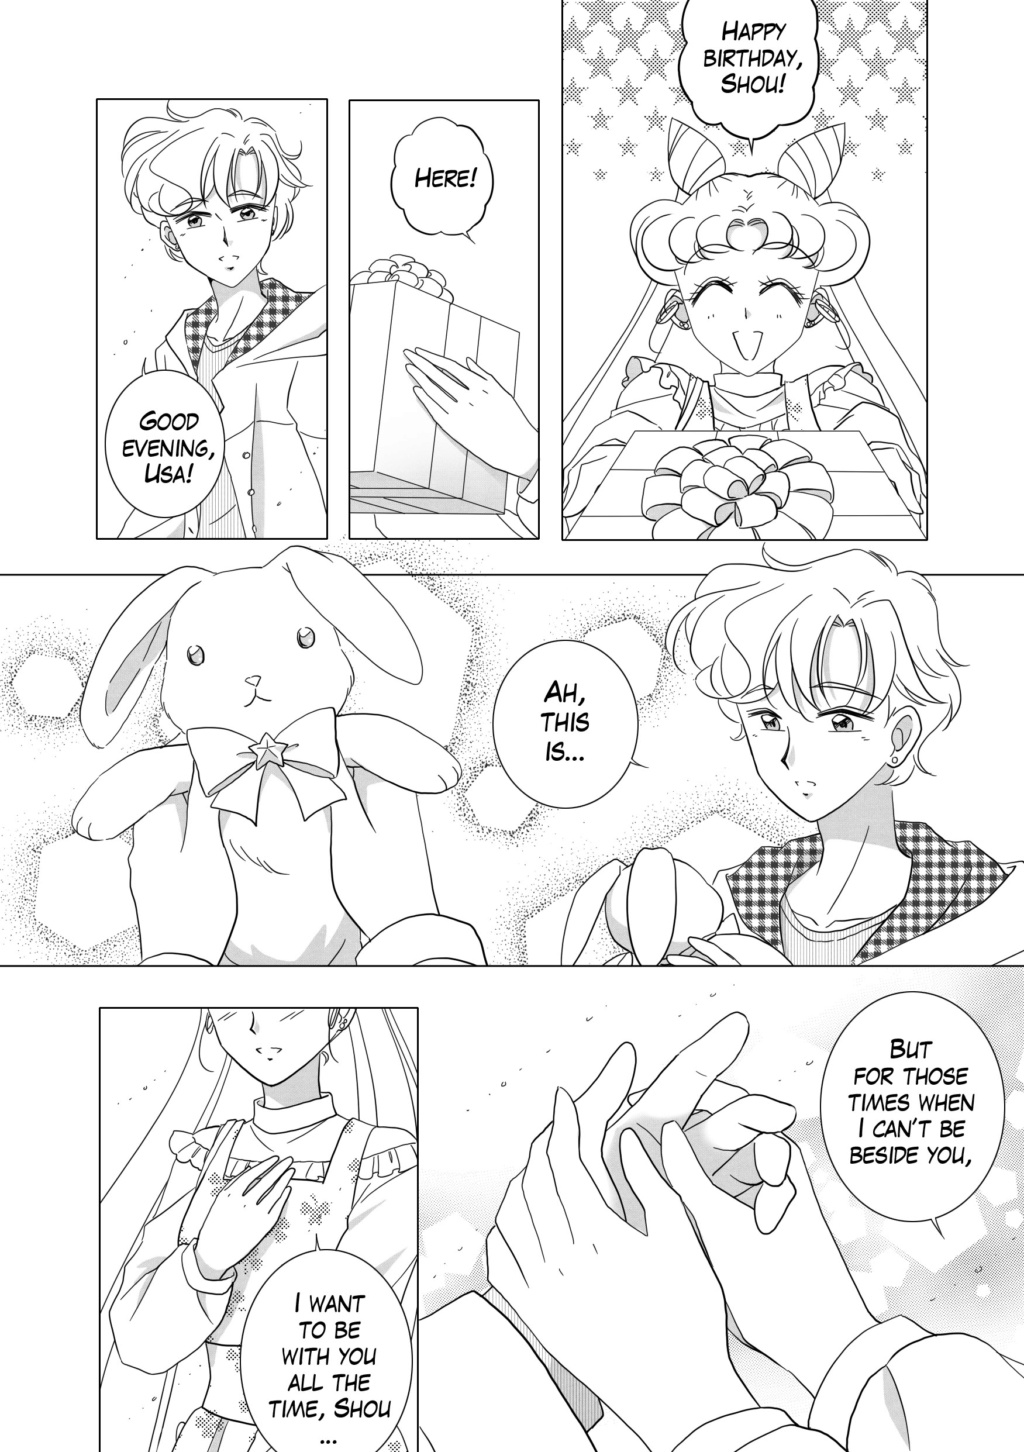 [F] My 30th century Chibi-Usa x Helios doujinshi project: UPDATED 11-25-18 - Page 19 Sbs_pg51